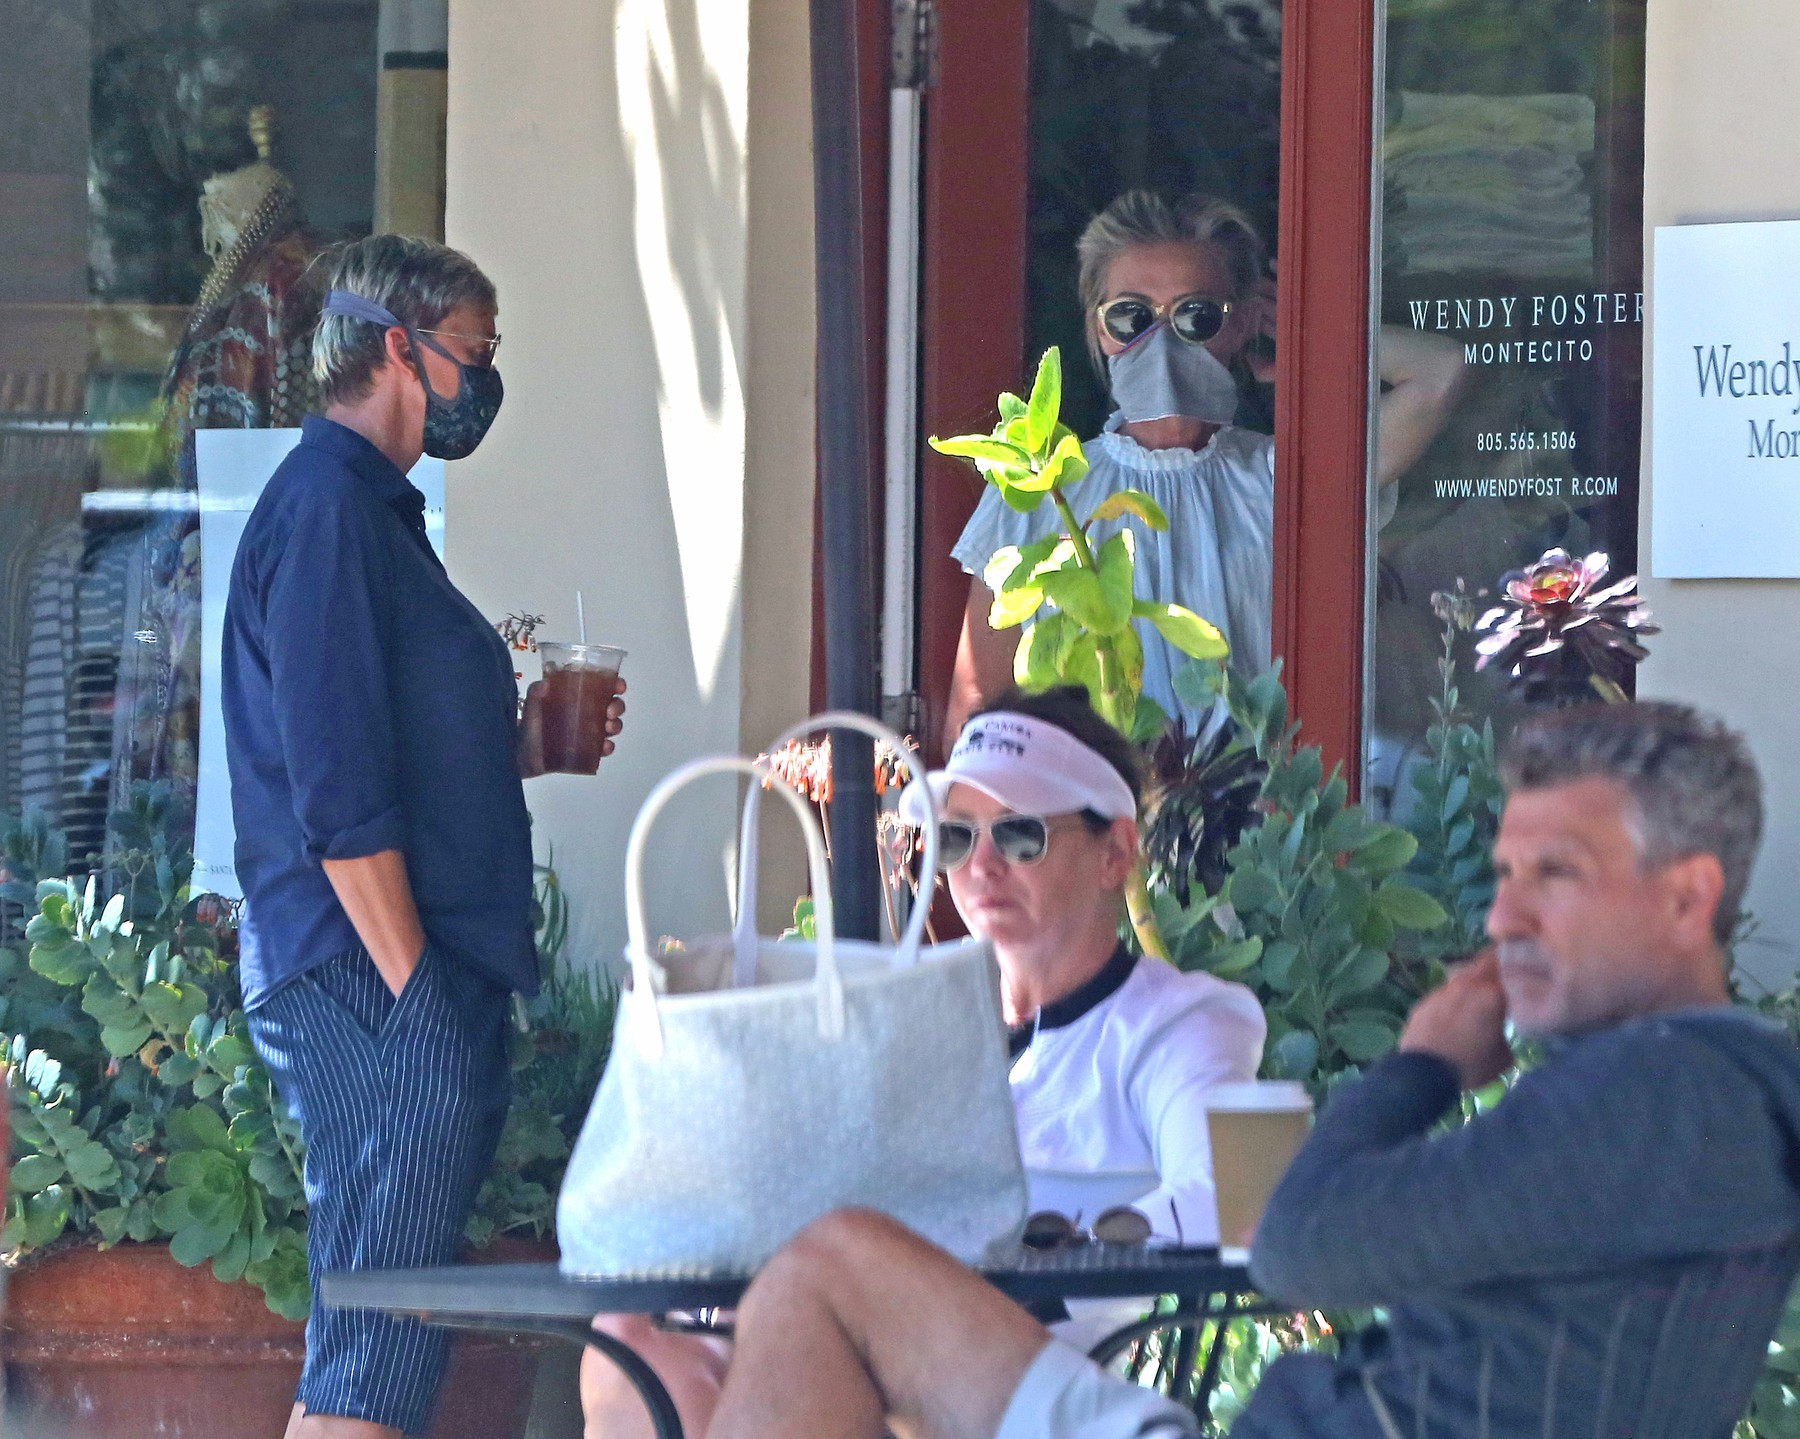 EXCLUSIVE: Ellen DeGeneres and Portia DeRossi who have been staying inside their fancy home in Santa Barbara, take a break from being cooped up what Ellen described as, her